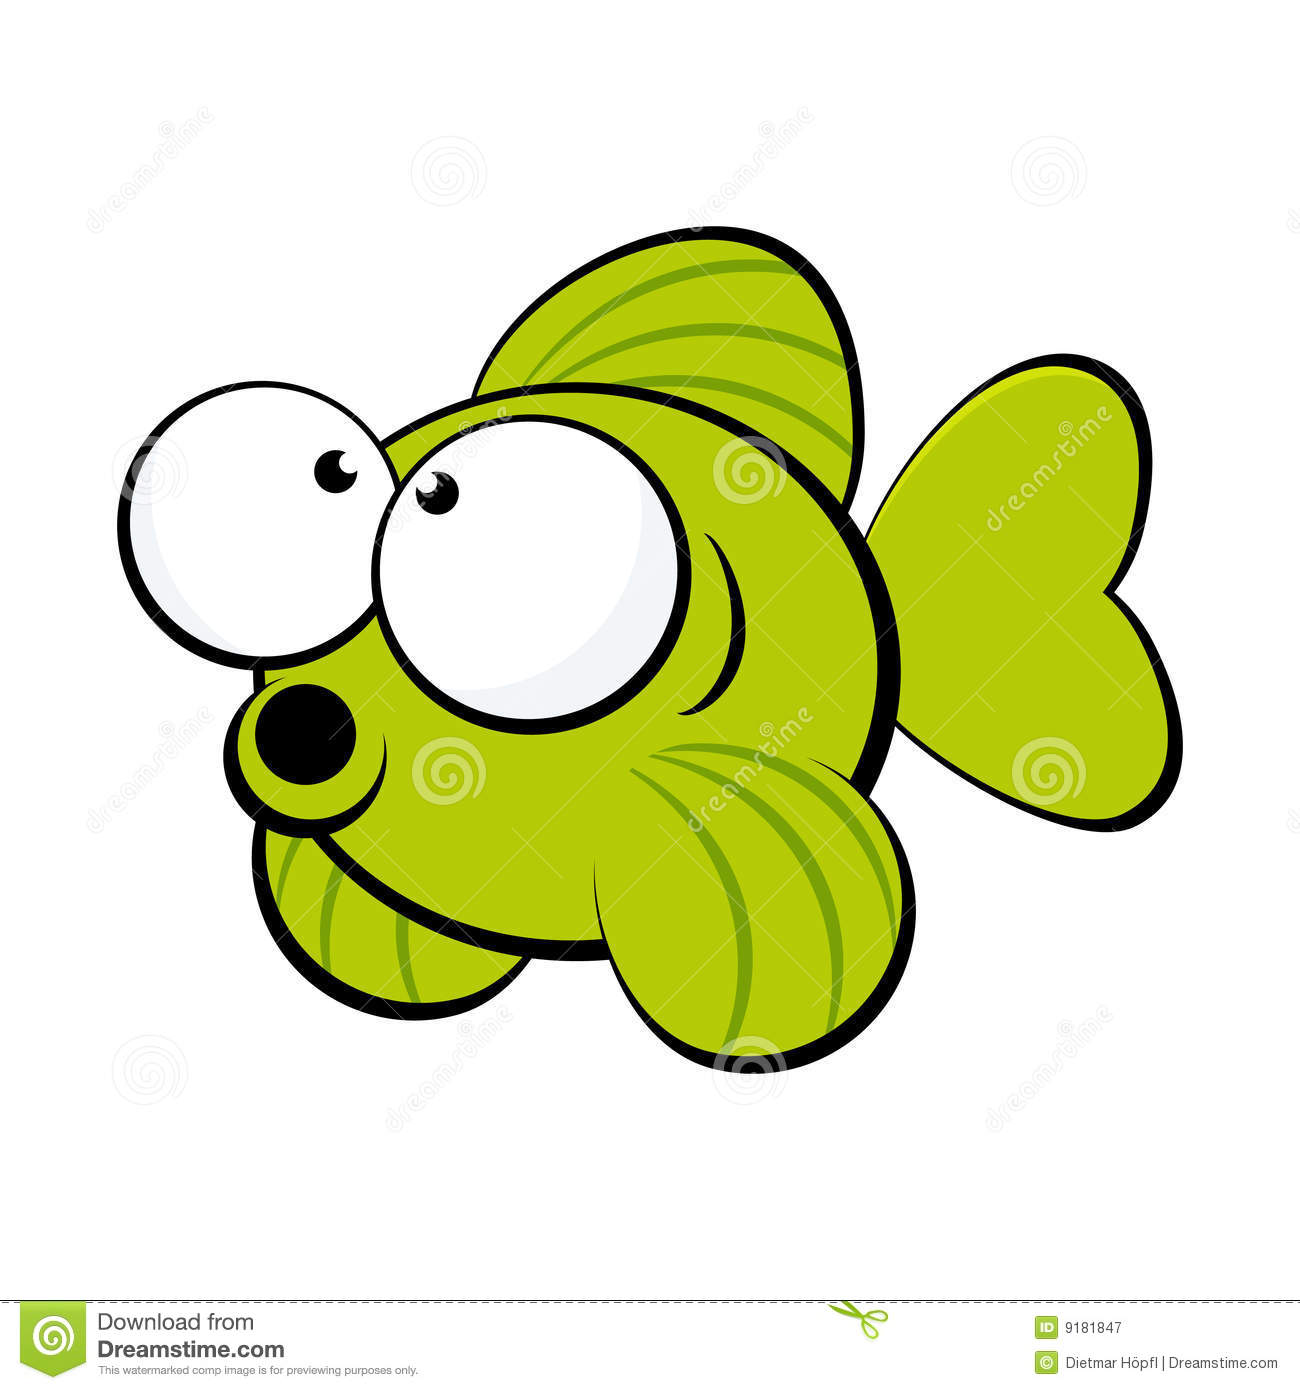 Baby Fish Clipart - Clipart Kid